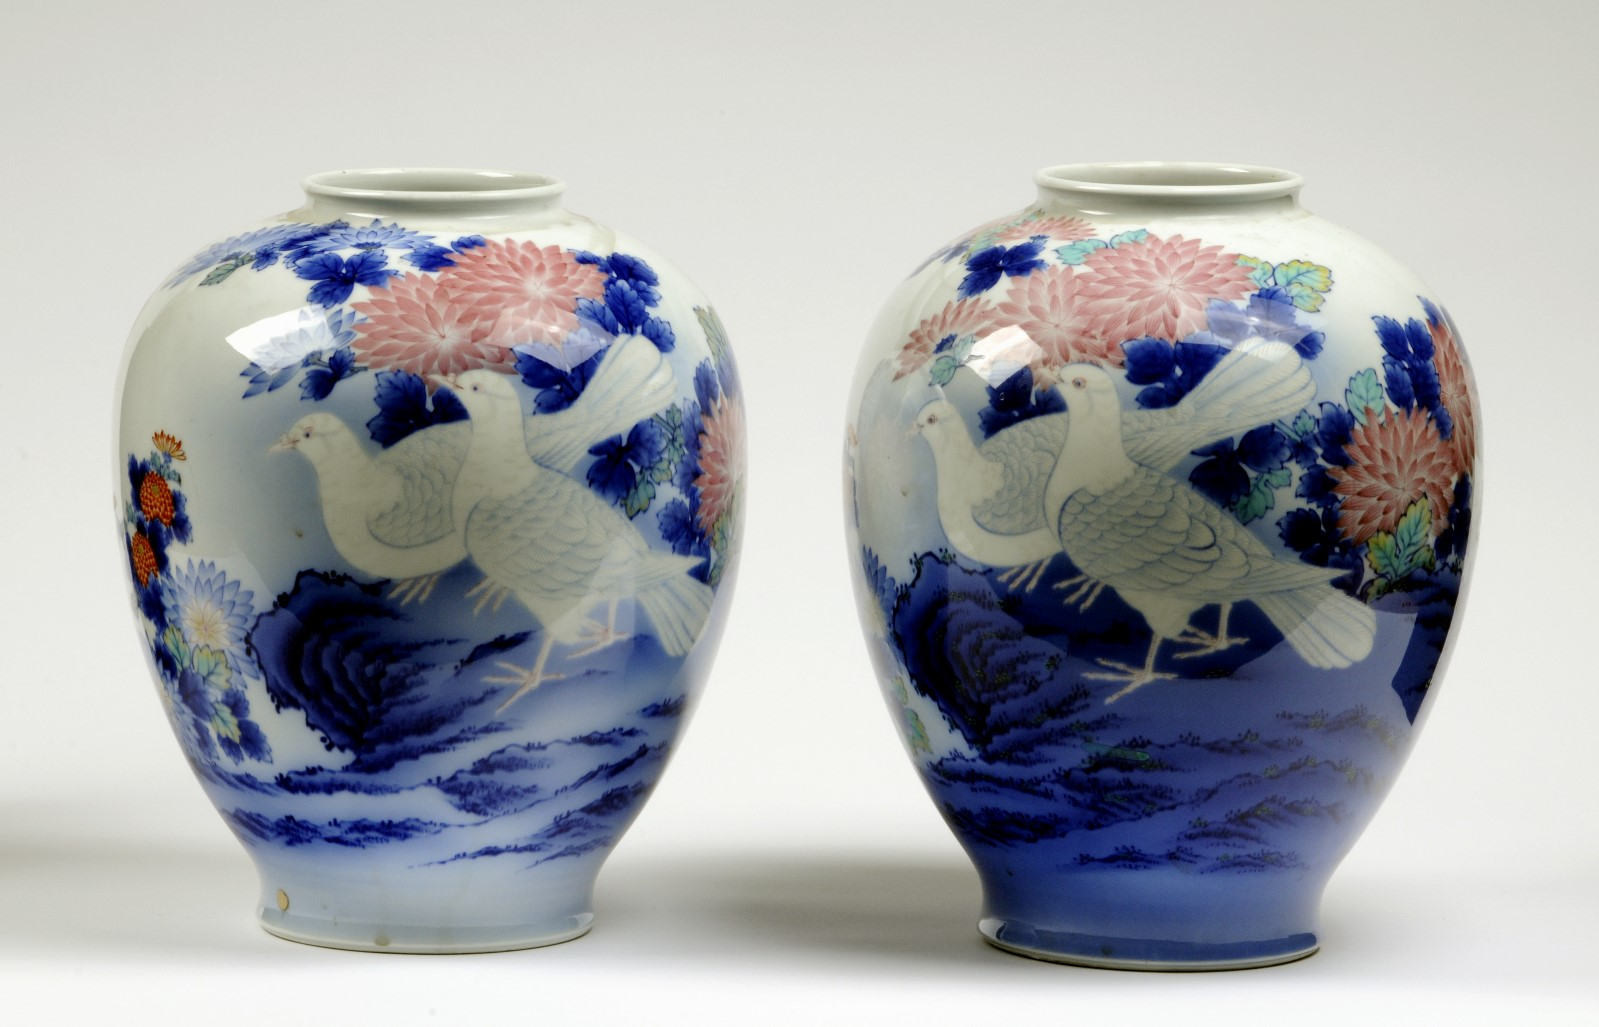 Pair of ceramic vases in white, blue and pink. Two birds on each vase with pink and blue flowers in the background